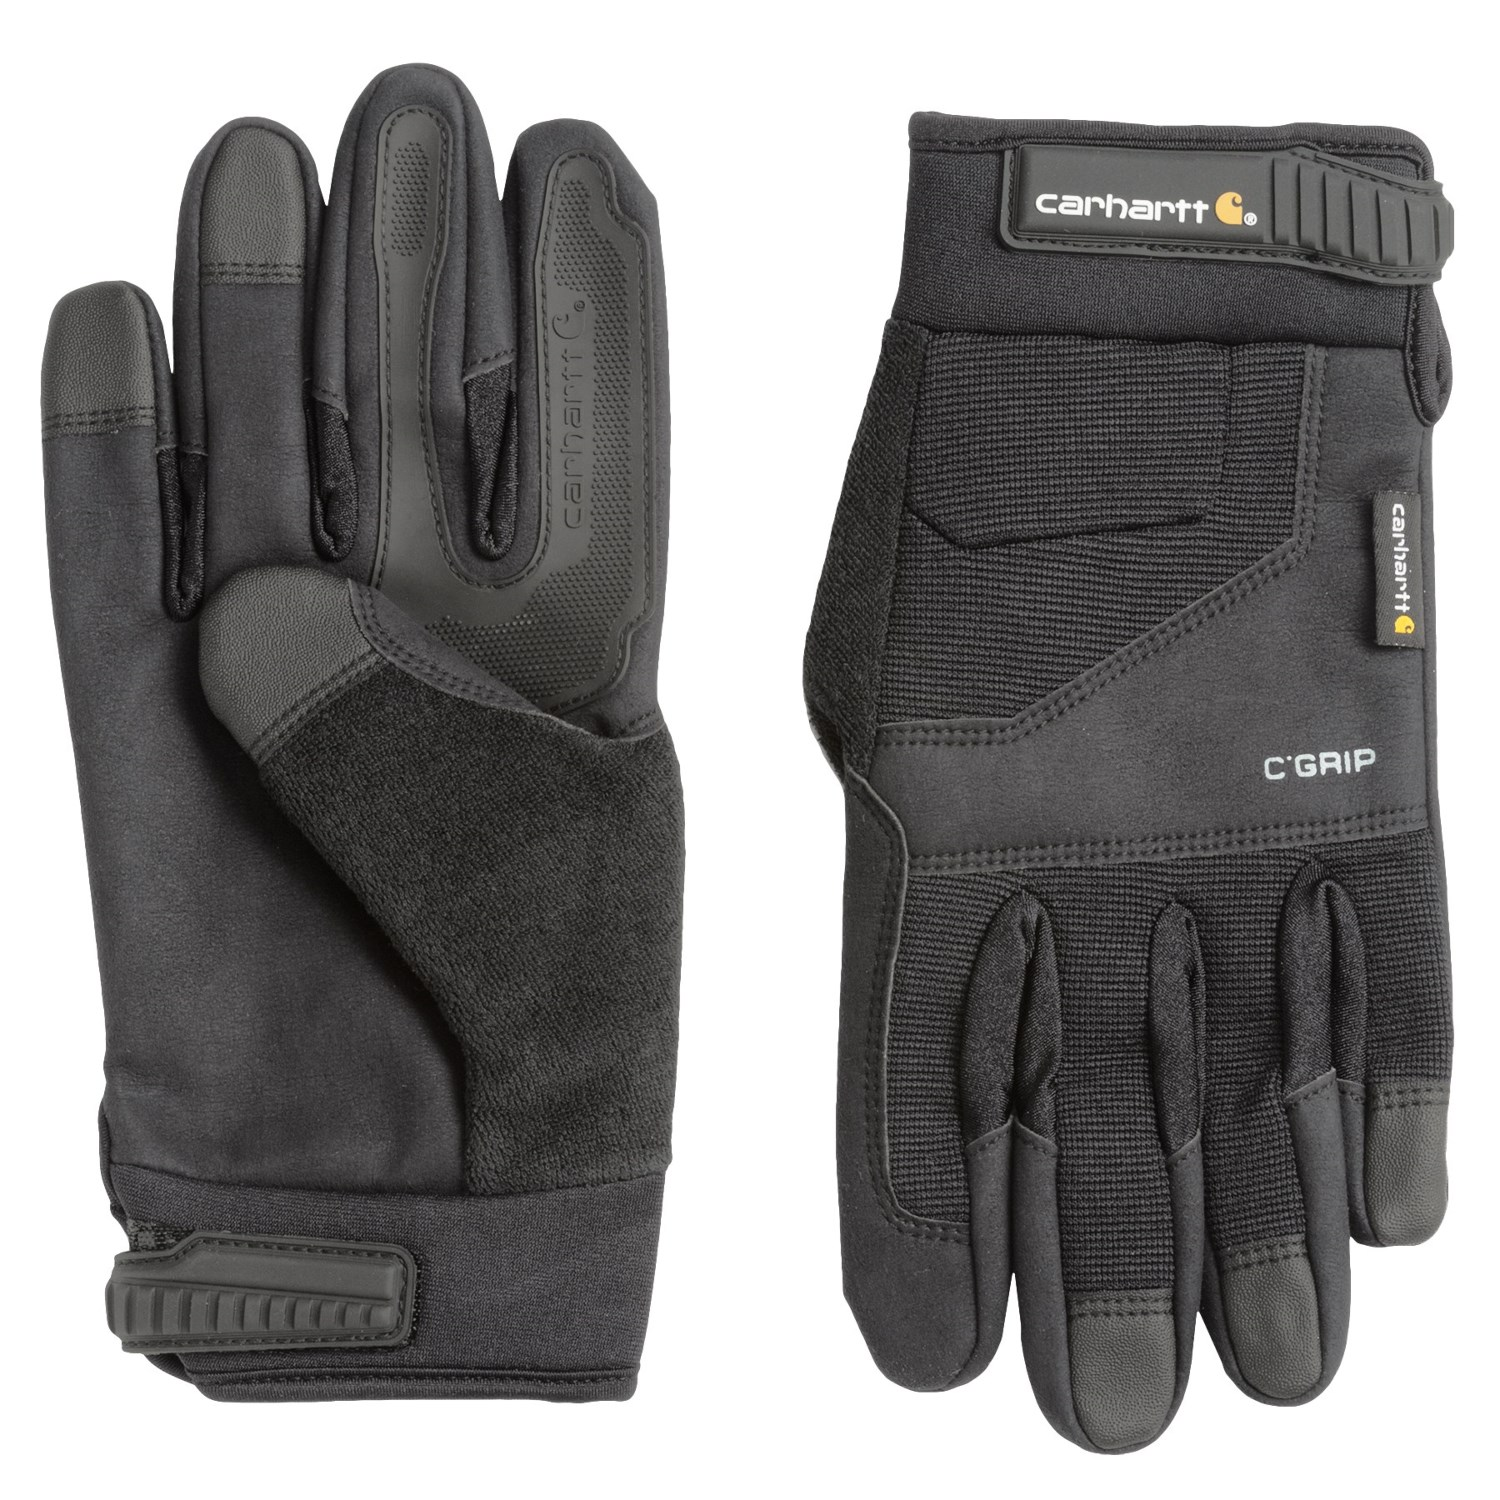 Black grip gloves - Click To Expand